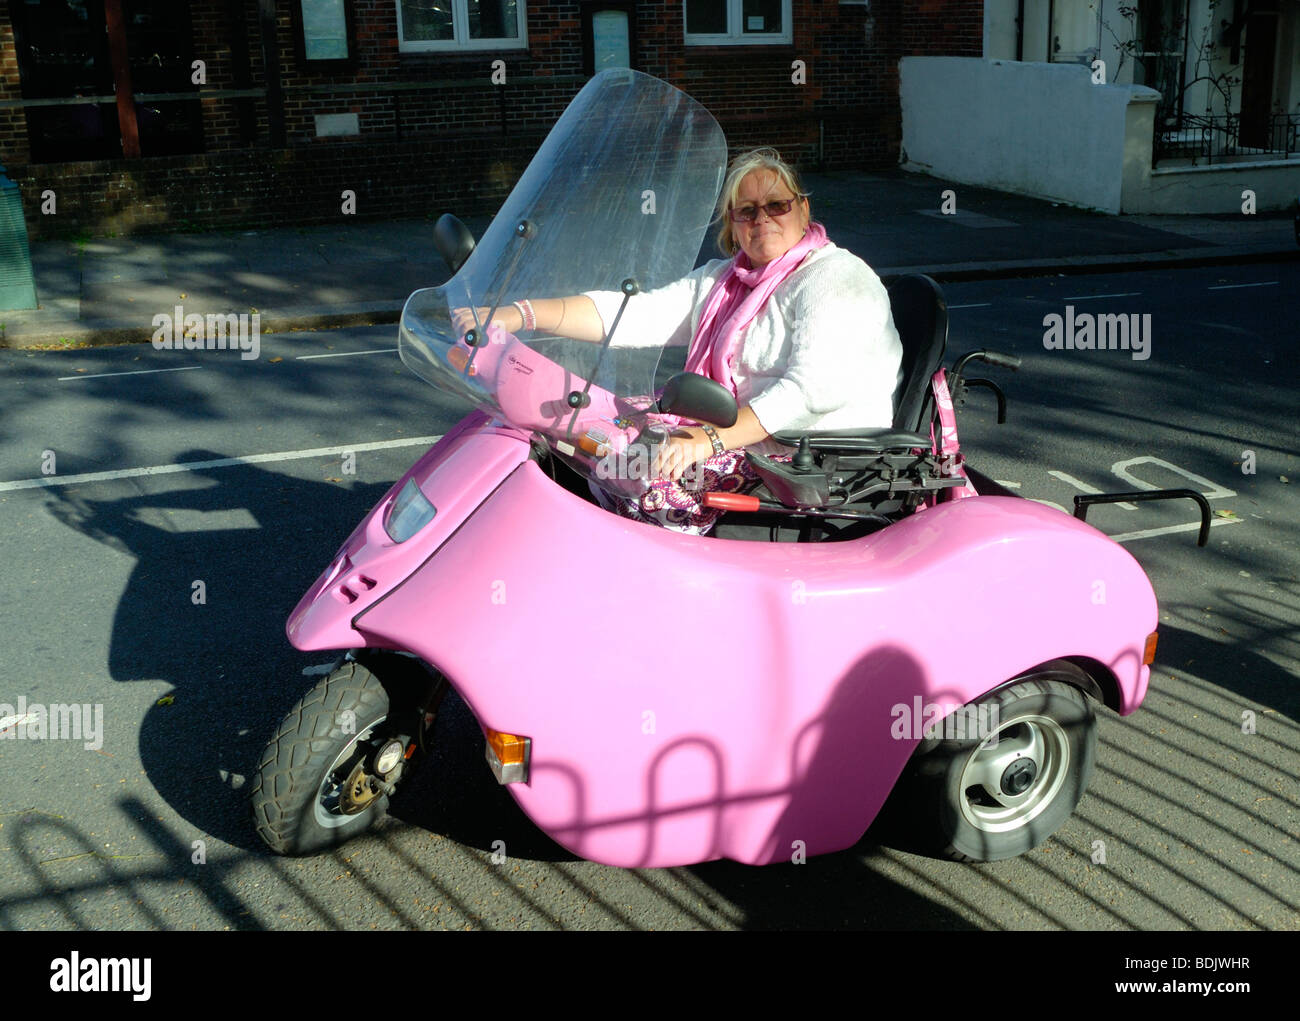 A lady driving a pink disability scooter - Stock Image